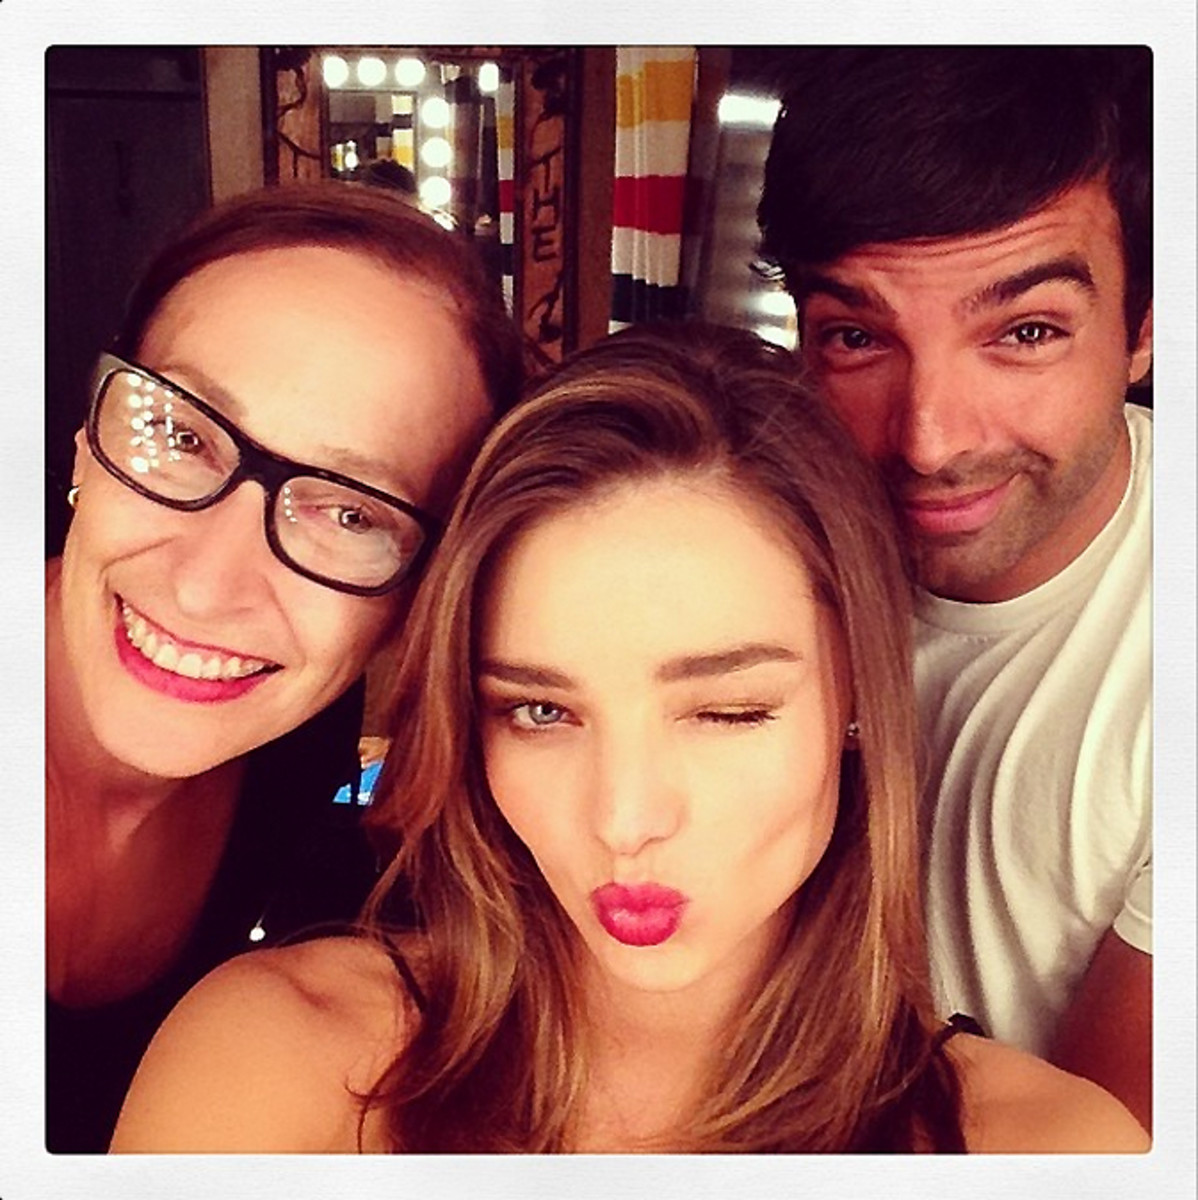 Miranda Kerr's power smoothie (Miranda Kerr with Rose Marie Swift and Harry Josh)